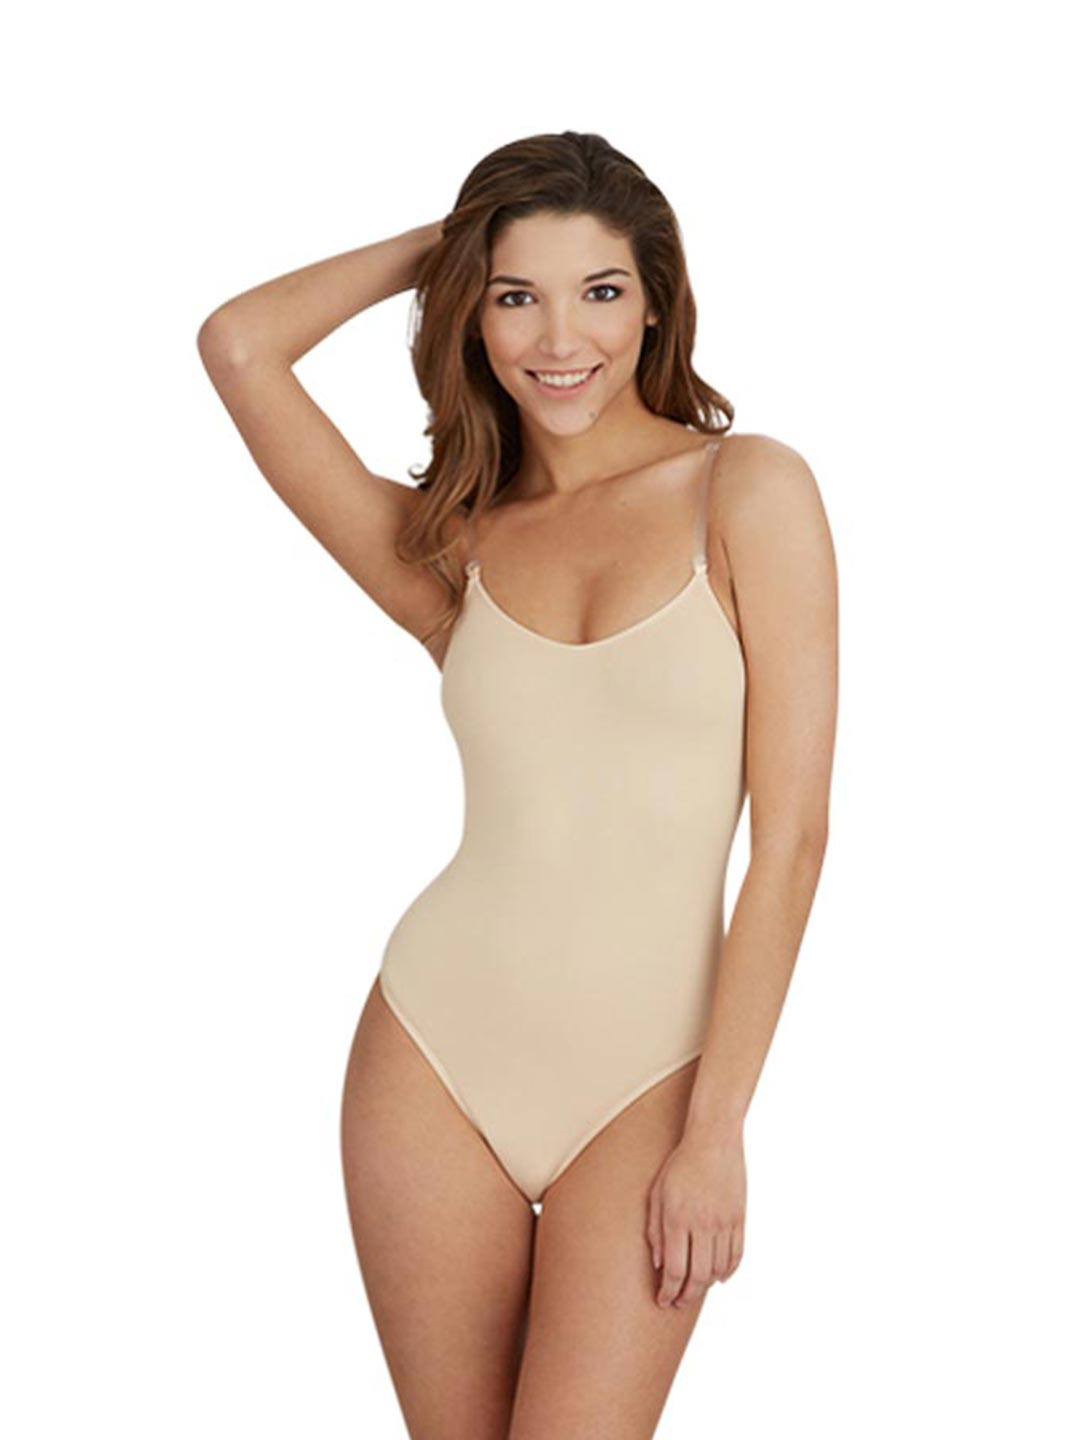 b6ee13e5c8253 Best-Seller Camisole Leotard with Clear Transition Straps